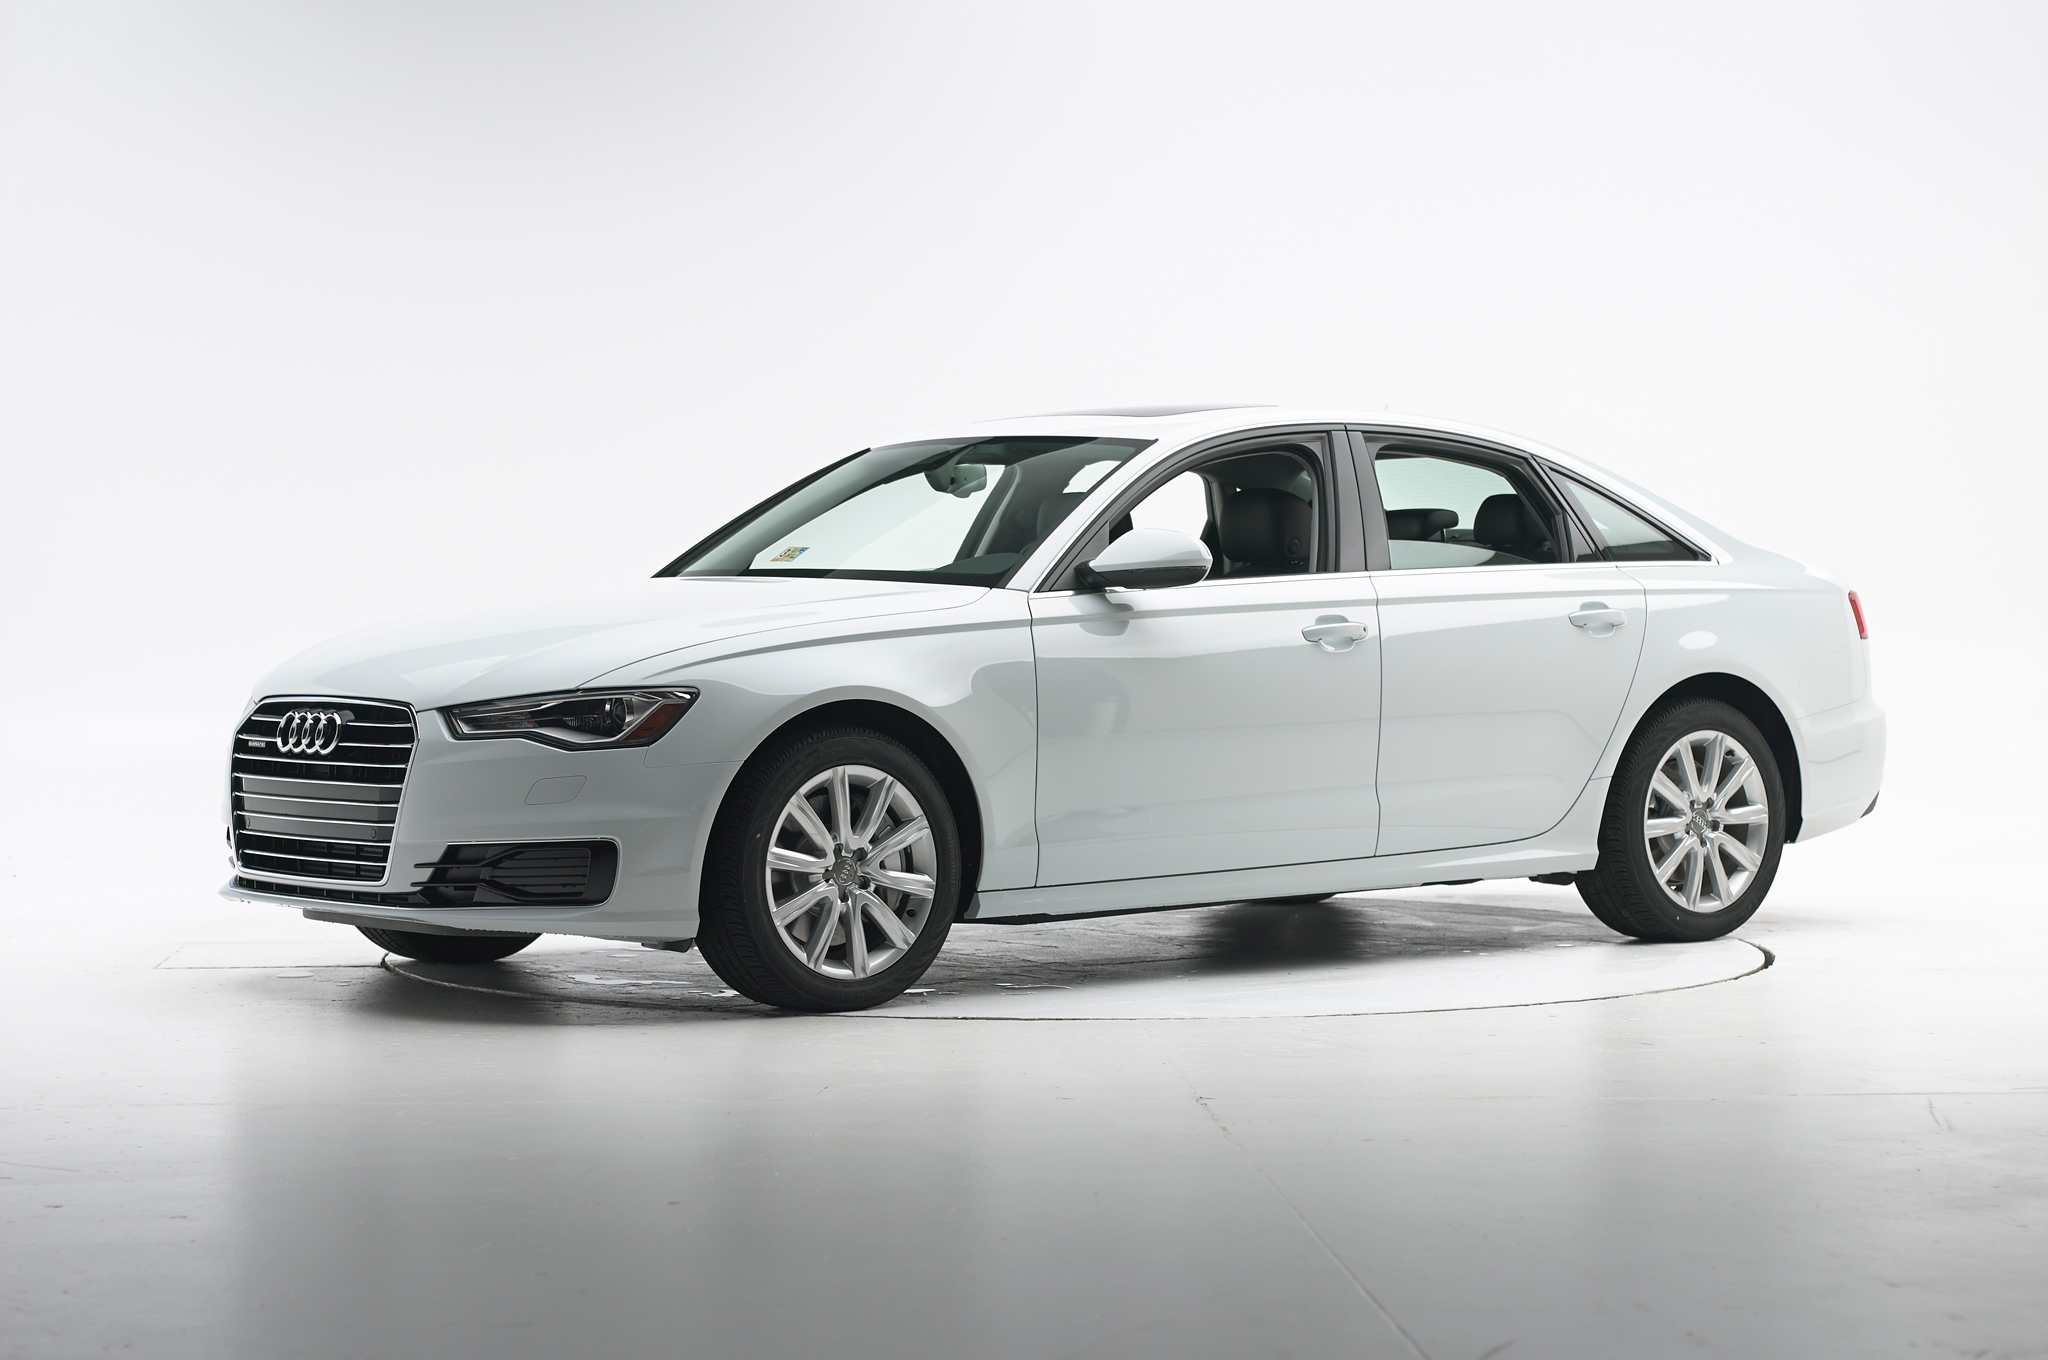 2016 Audi A6 Named an IIHS Top Safety Pick +